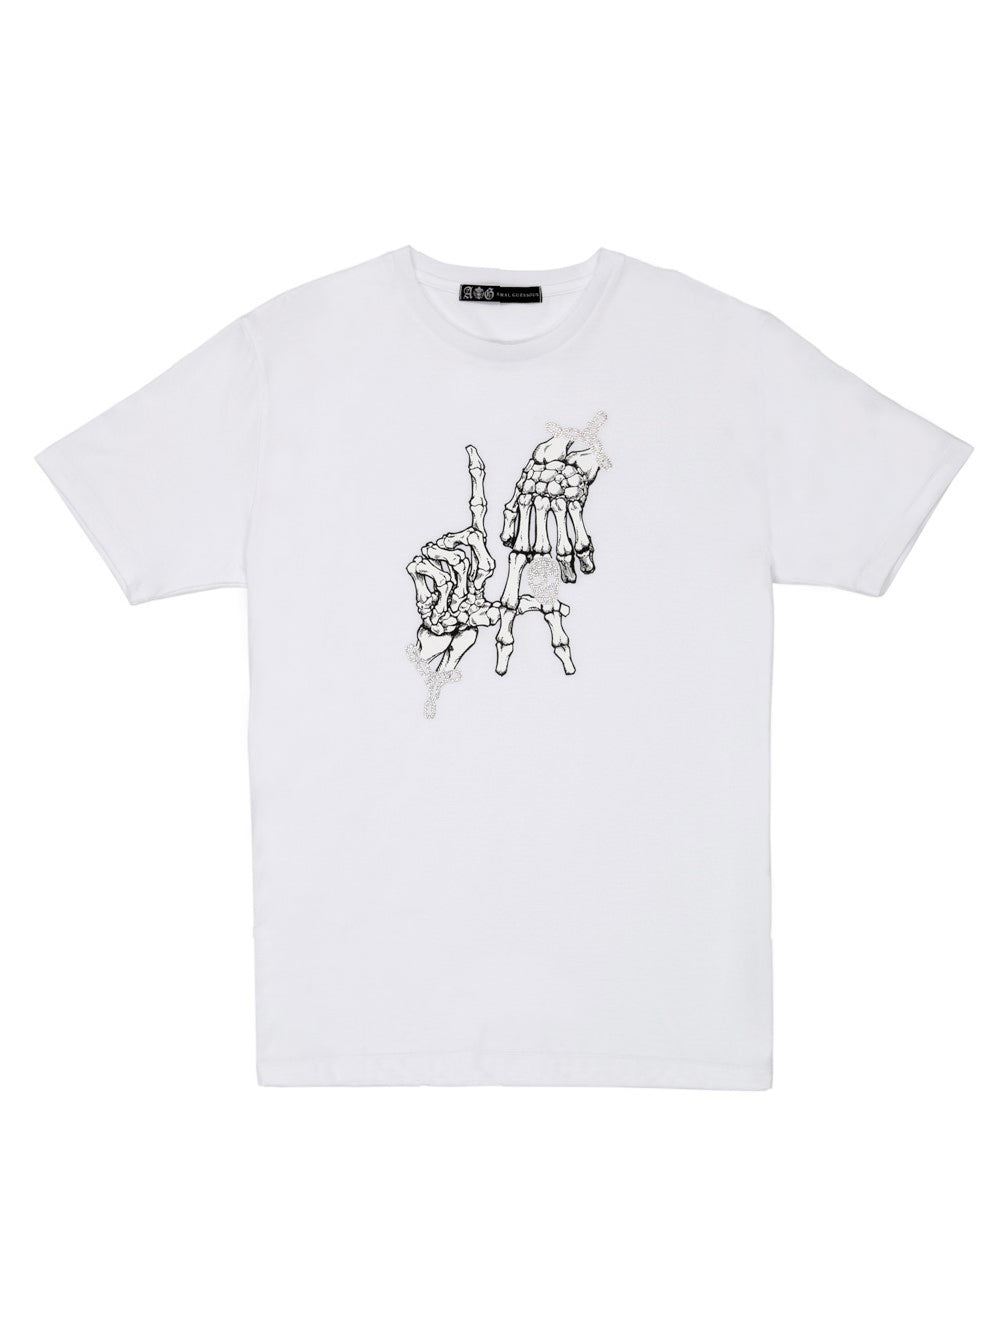 【4day's Special】HAND SIGN SWAROVSKI T-SHIRT/WHITE